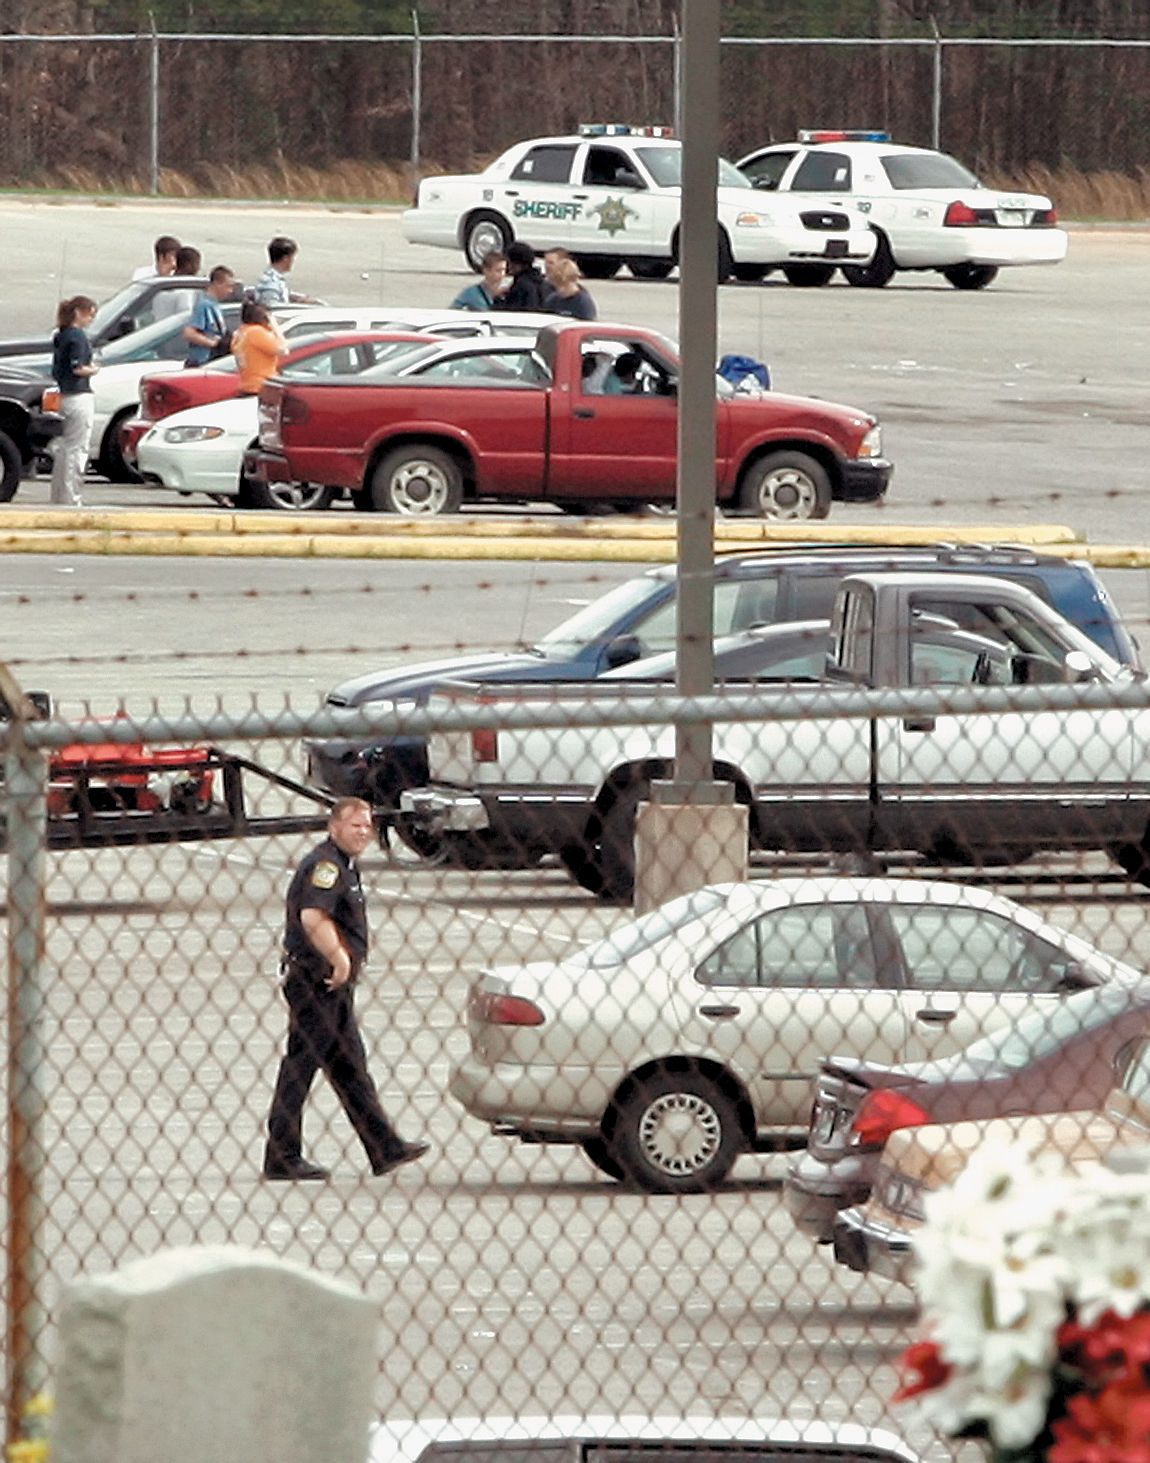 Lockdown at William Blount High on April 6, 2005